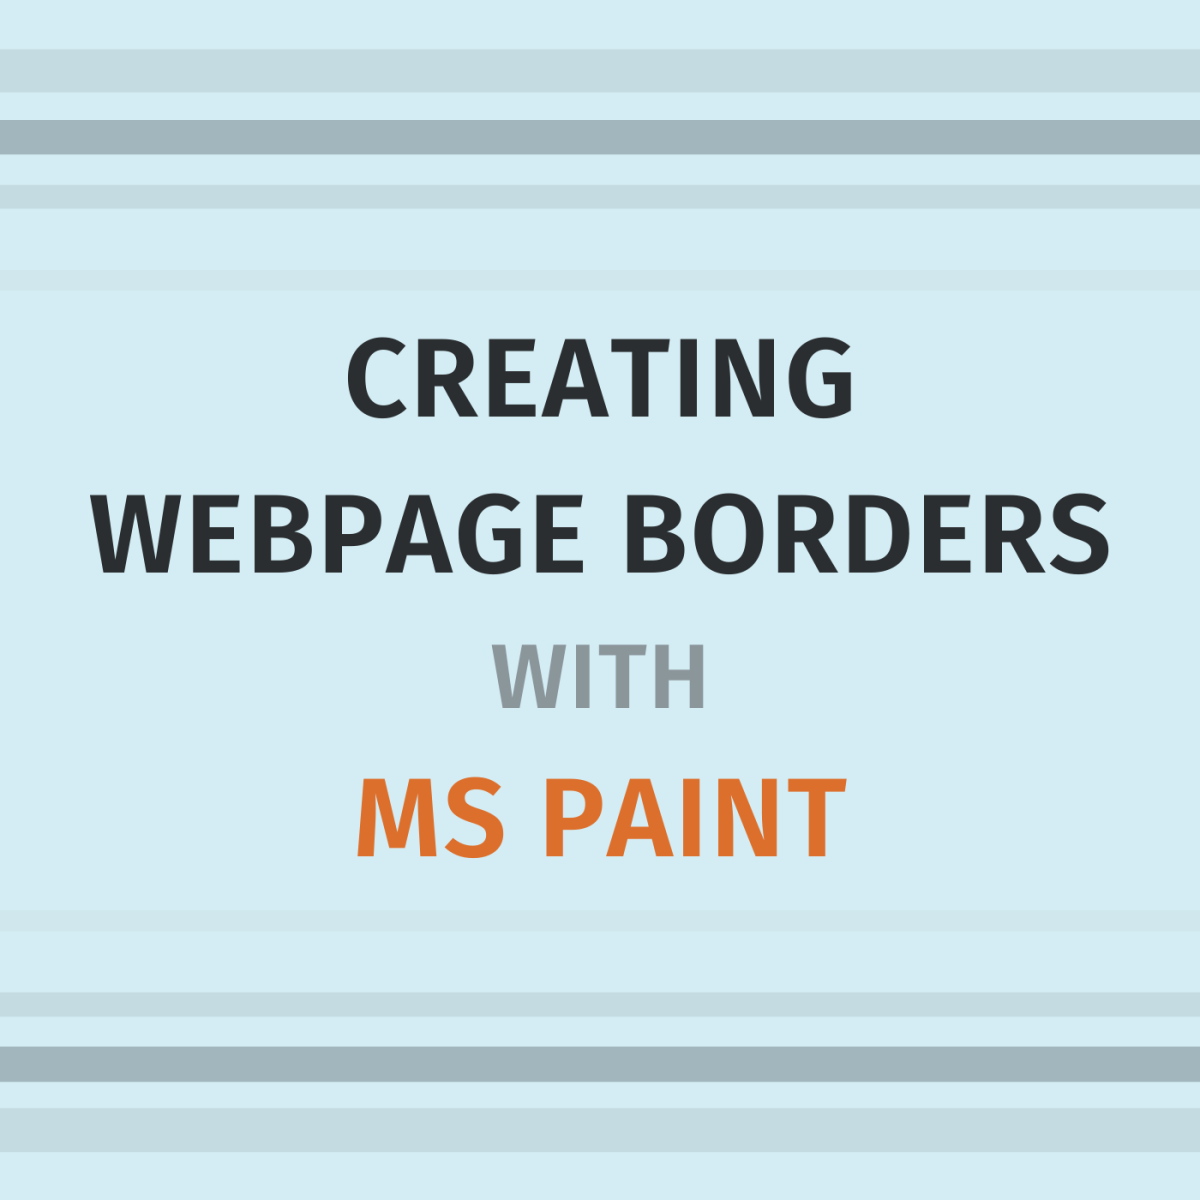 How to Create Simple Webpage Borders Using MS Paint